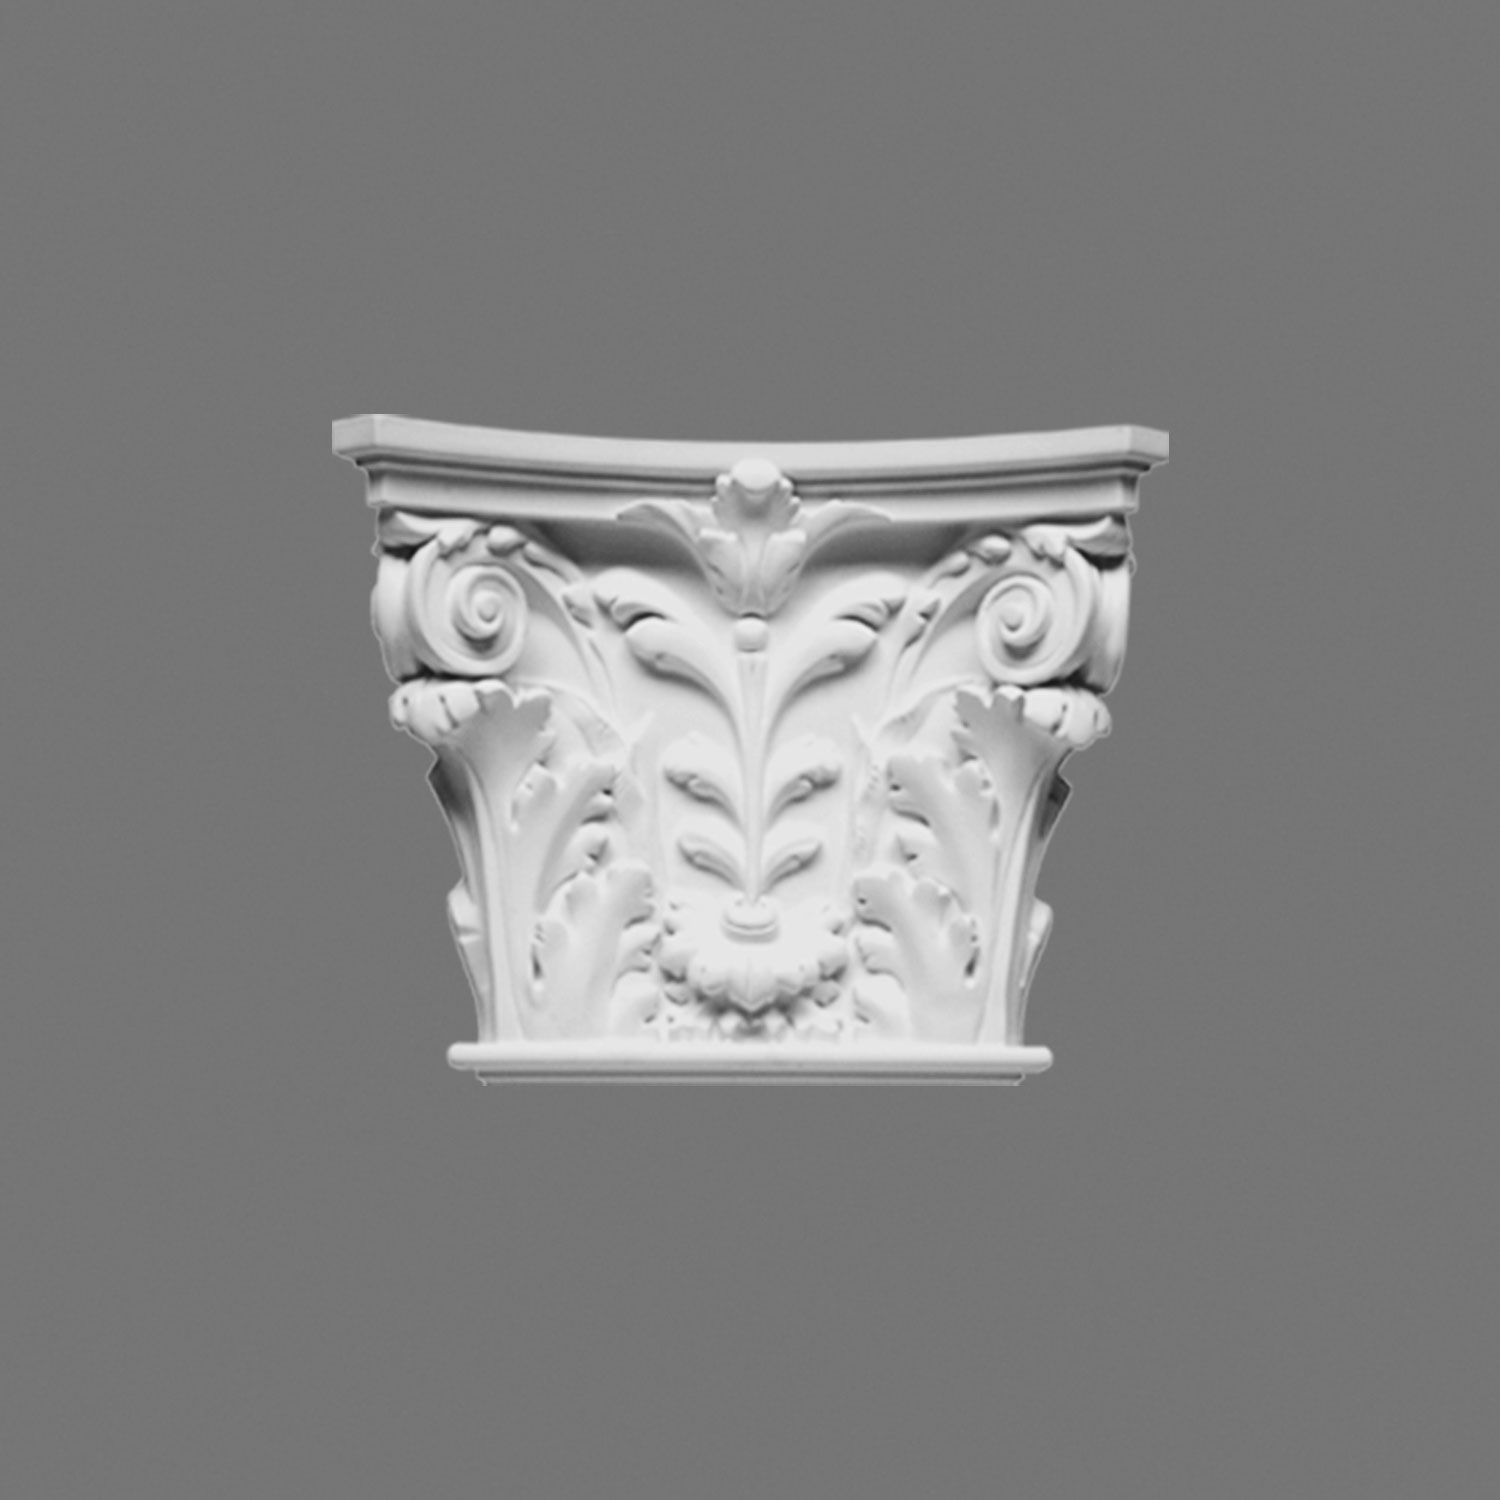 Capital for Pilaster